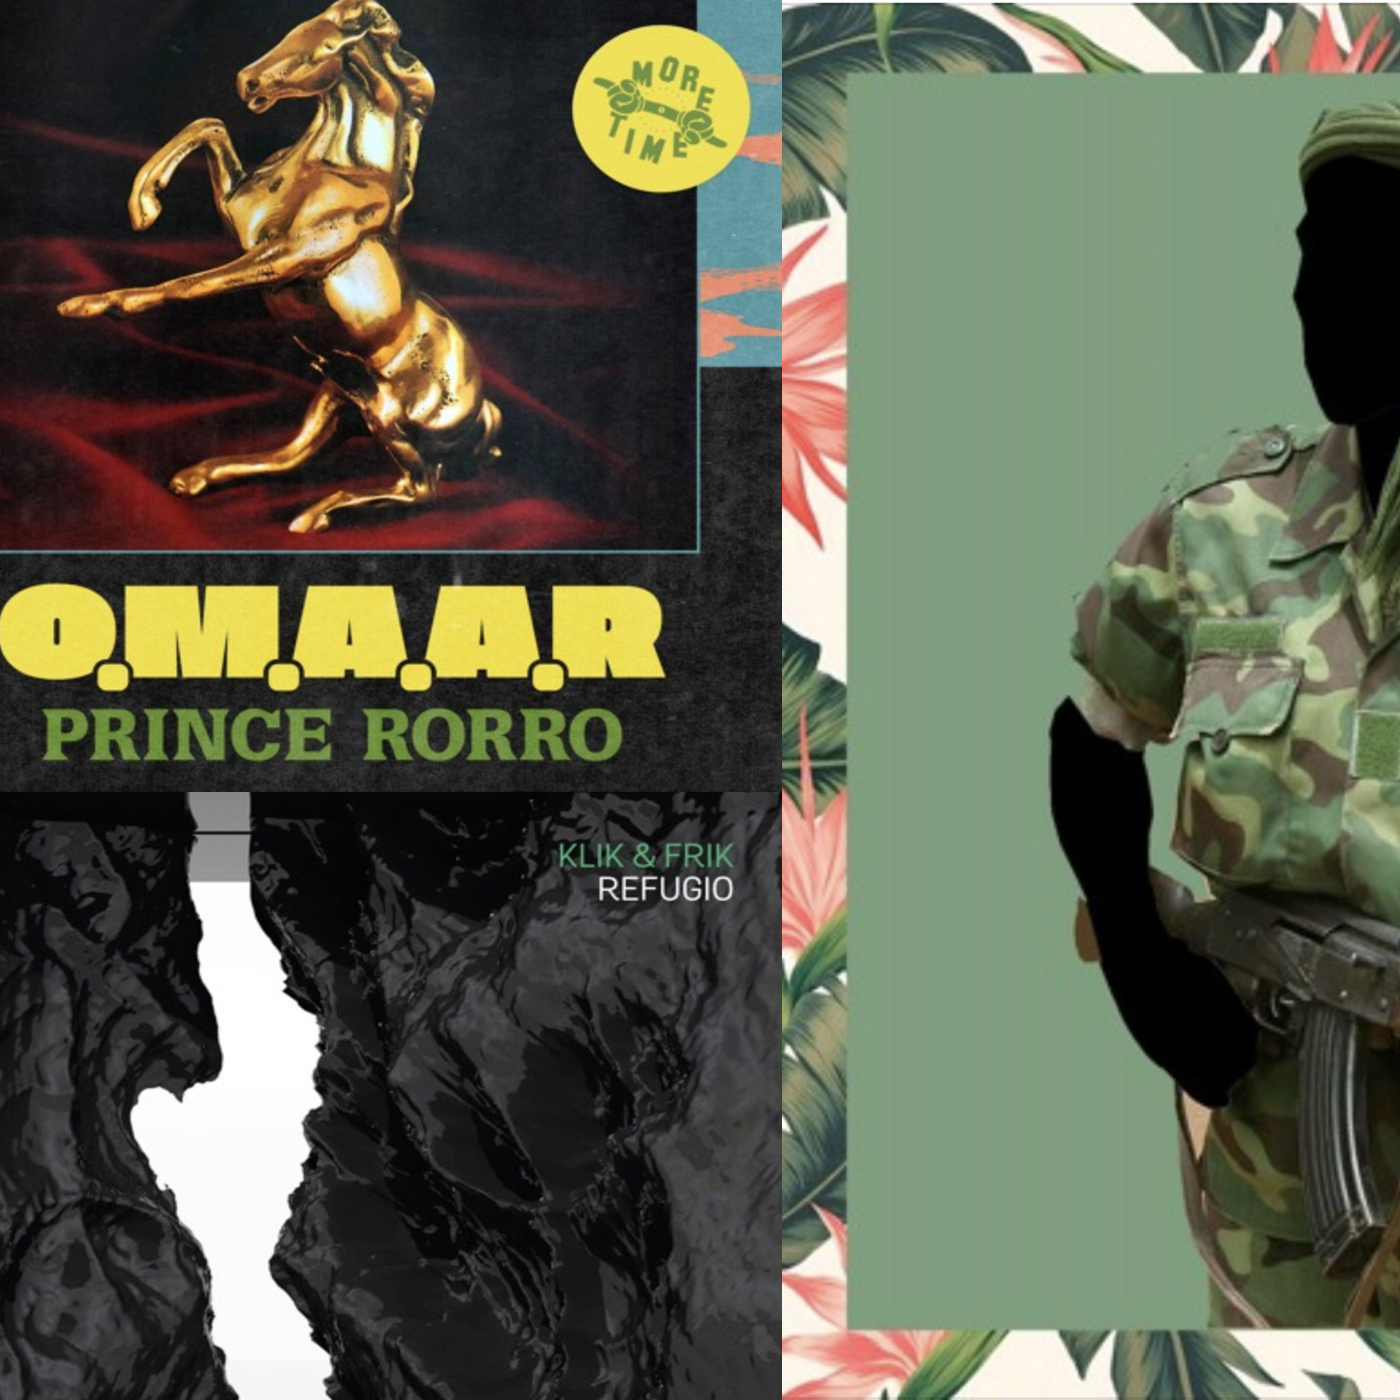 Cool EPs by Sonido Berzerk, Klik & Frik and O.M.A.A.R